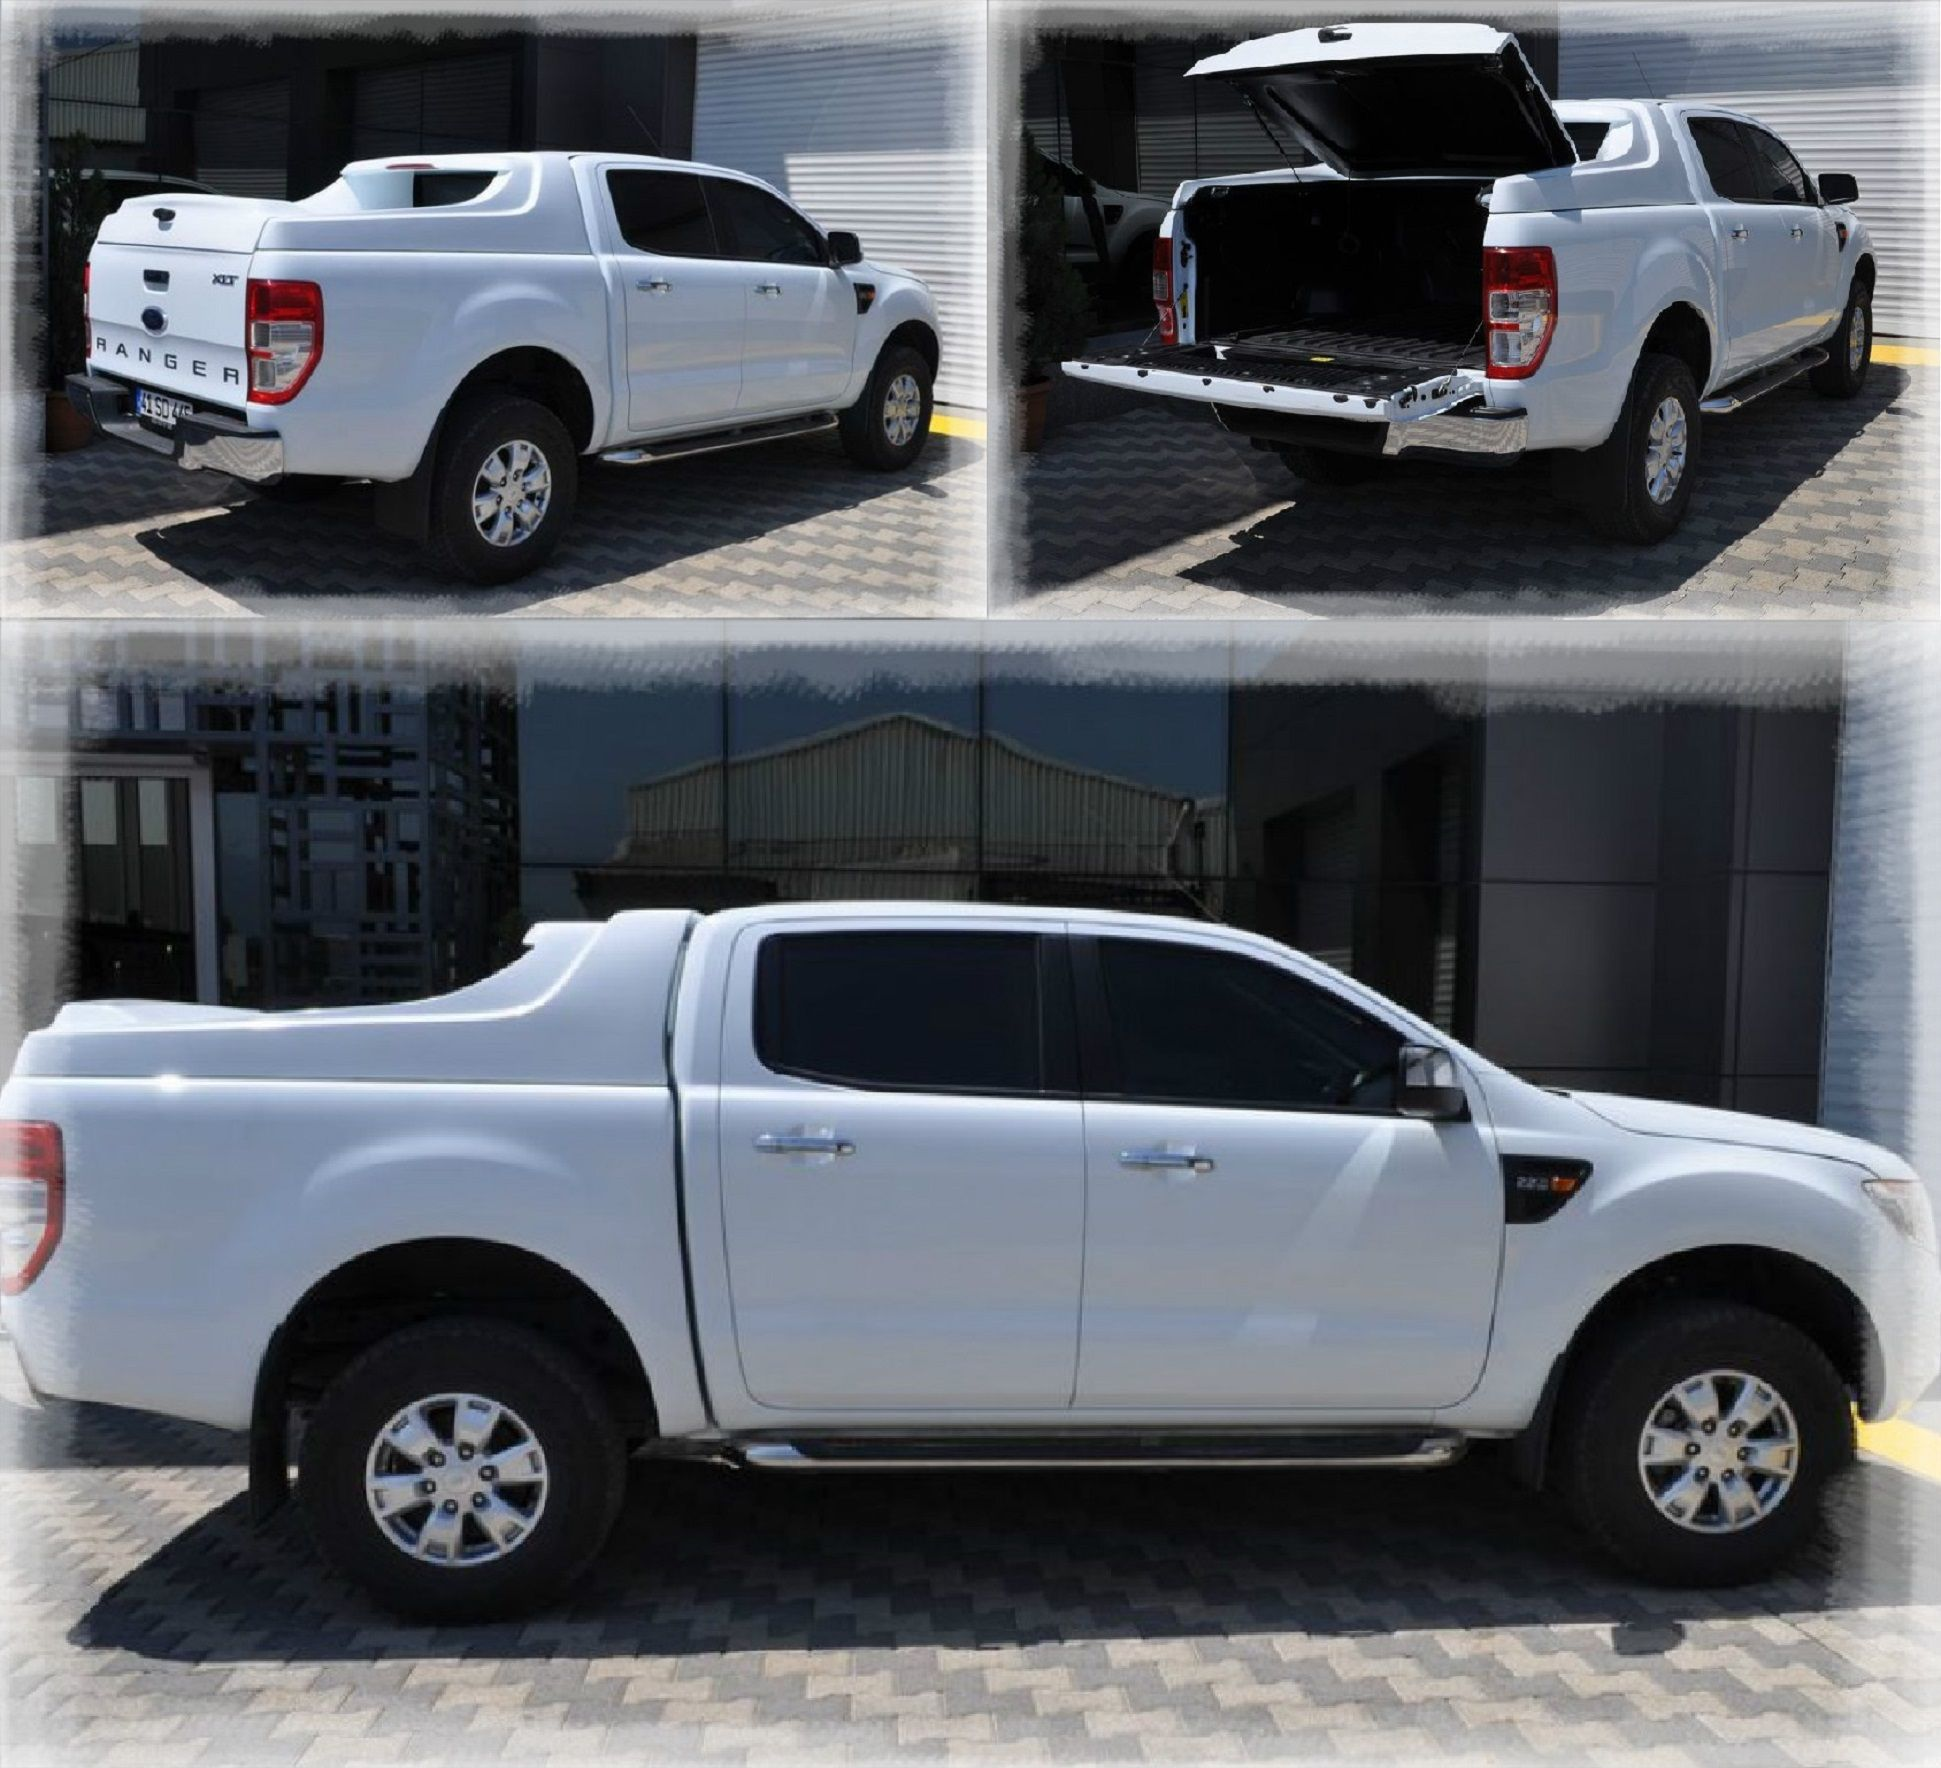 Ford Ranger XLT with FullBox Sport Lid Canopy - $950. //euroline4x4 & Ford Ranger XLT with FullBox Sport Lid Canopy - $950. http ...